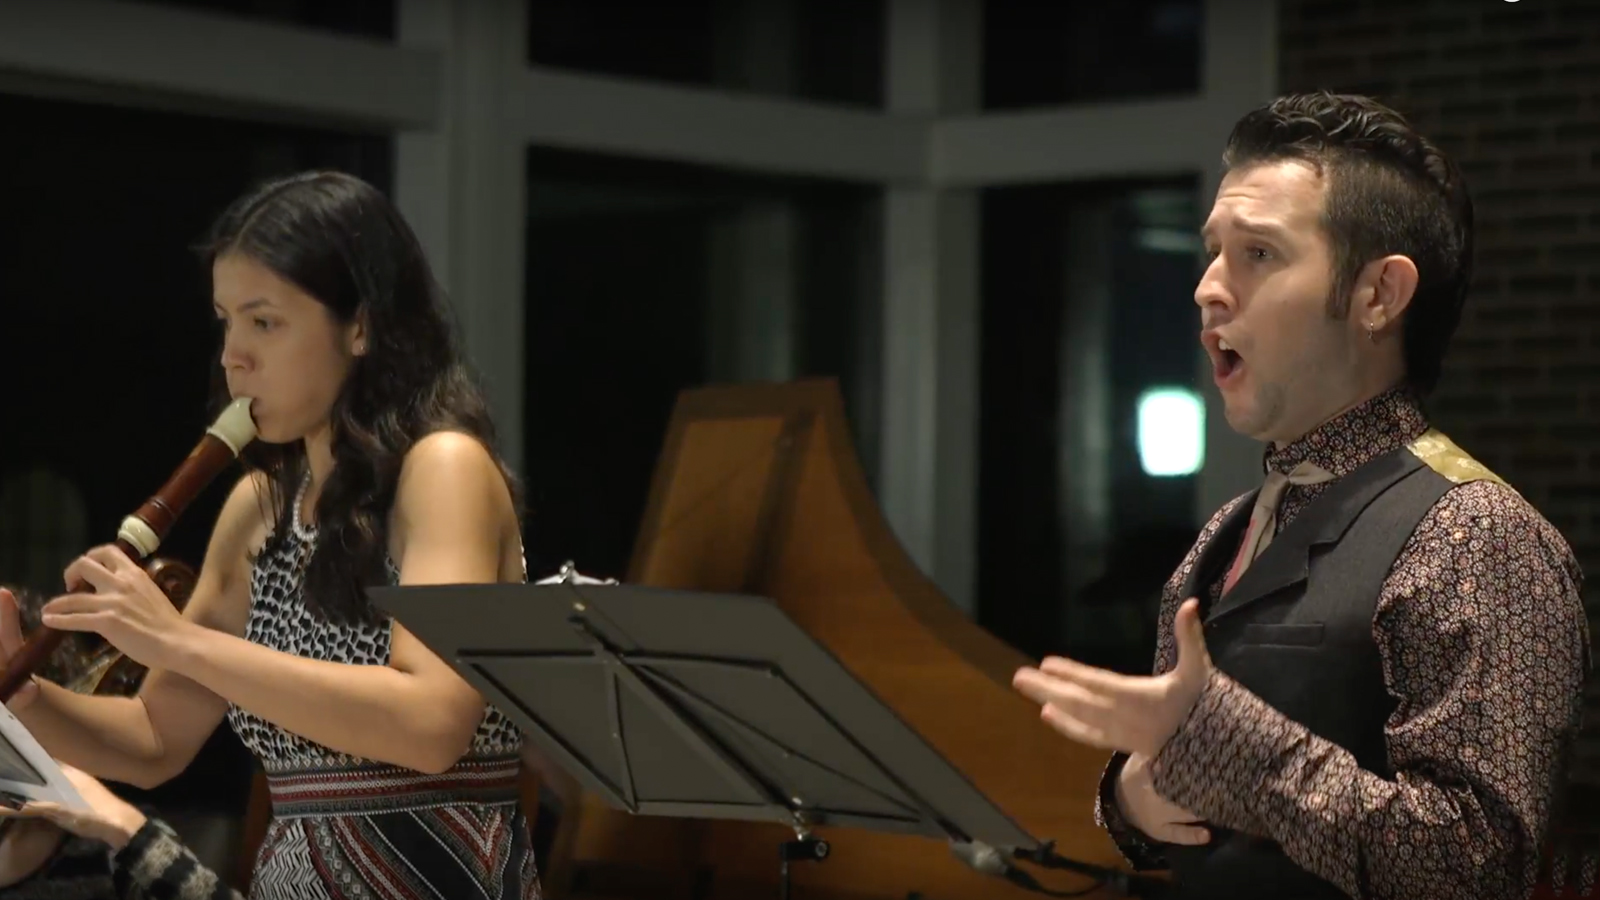 Laura Osterlund and Thomas Alaan perform  I.Iman  from  Two Assyrian Songs . The movement tells the story of Iman as she escaped from Iraq in the 1980s.